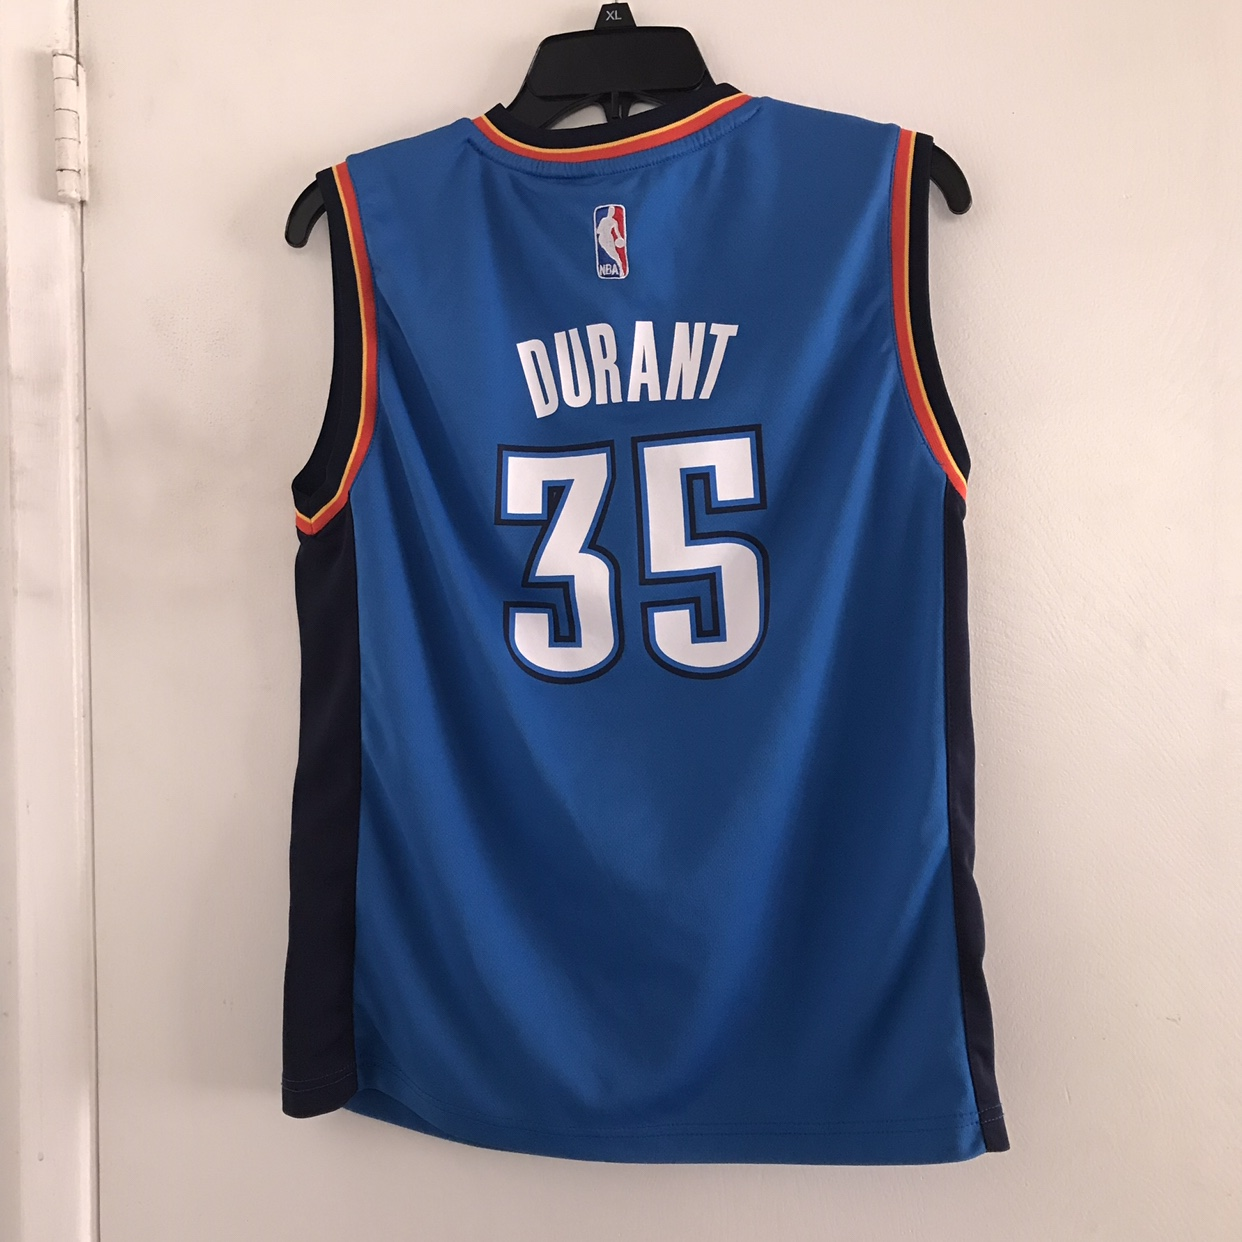 super popular beb1e c9a35 Adidas Kevin Durant OKC Jersey Youth L (Adult... - Depop